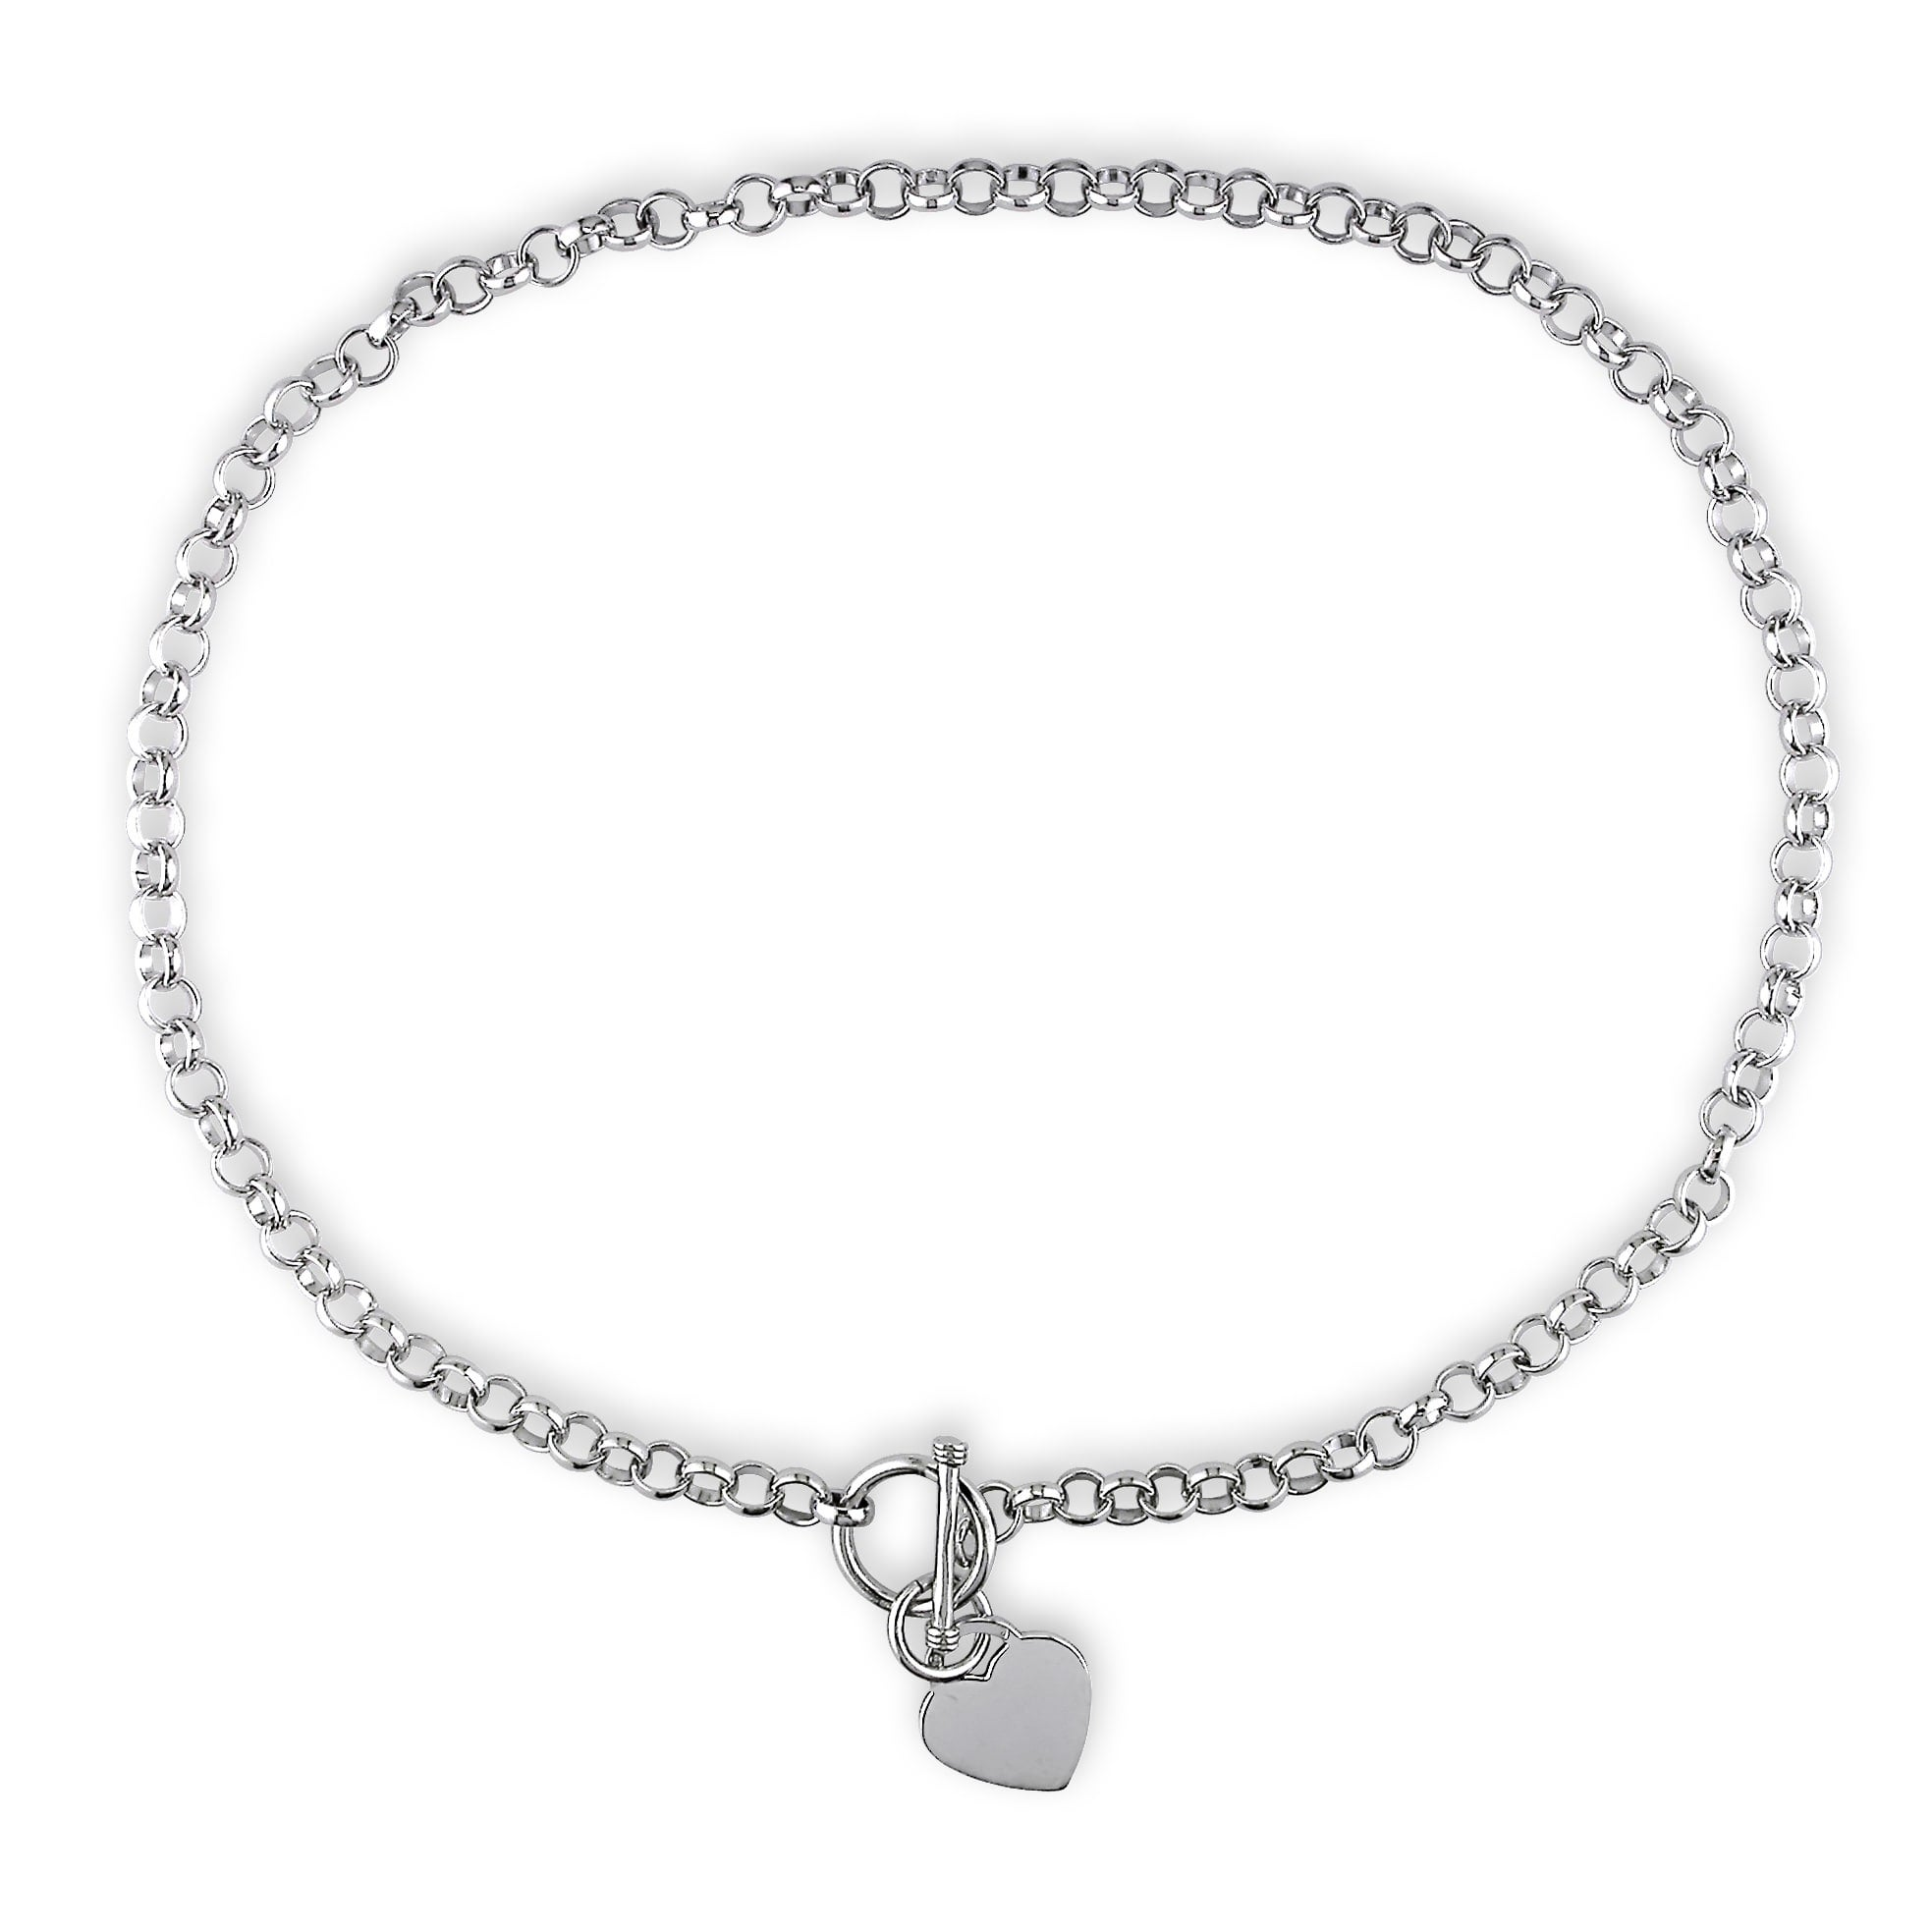 f7c9b4bcc54 Shop Miadora Sterling Silver Linked-Heart Charm Necklace and Bracelet 2-Piece  Set - White - Free Shipping Today - Overstock - 21377187